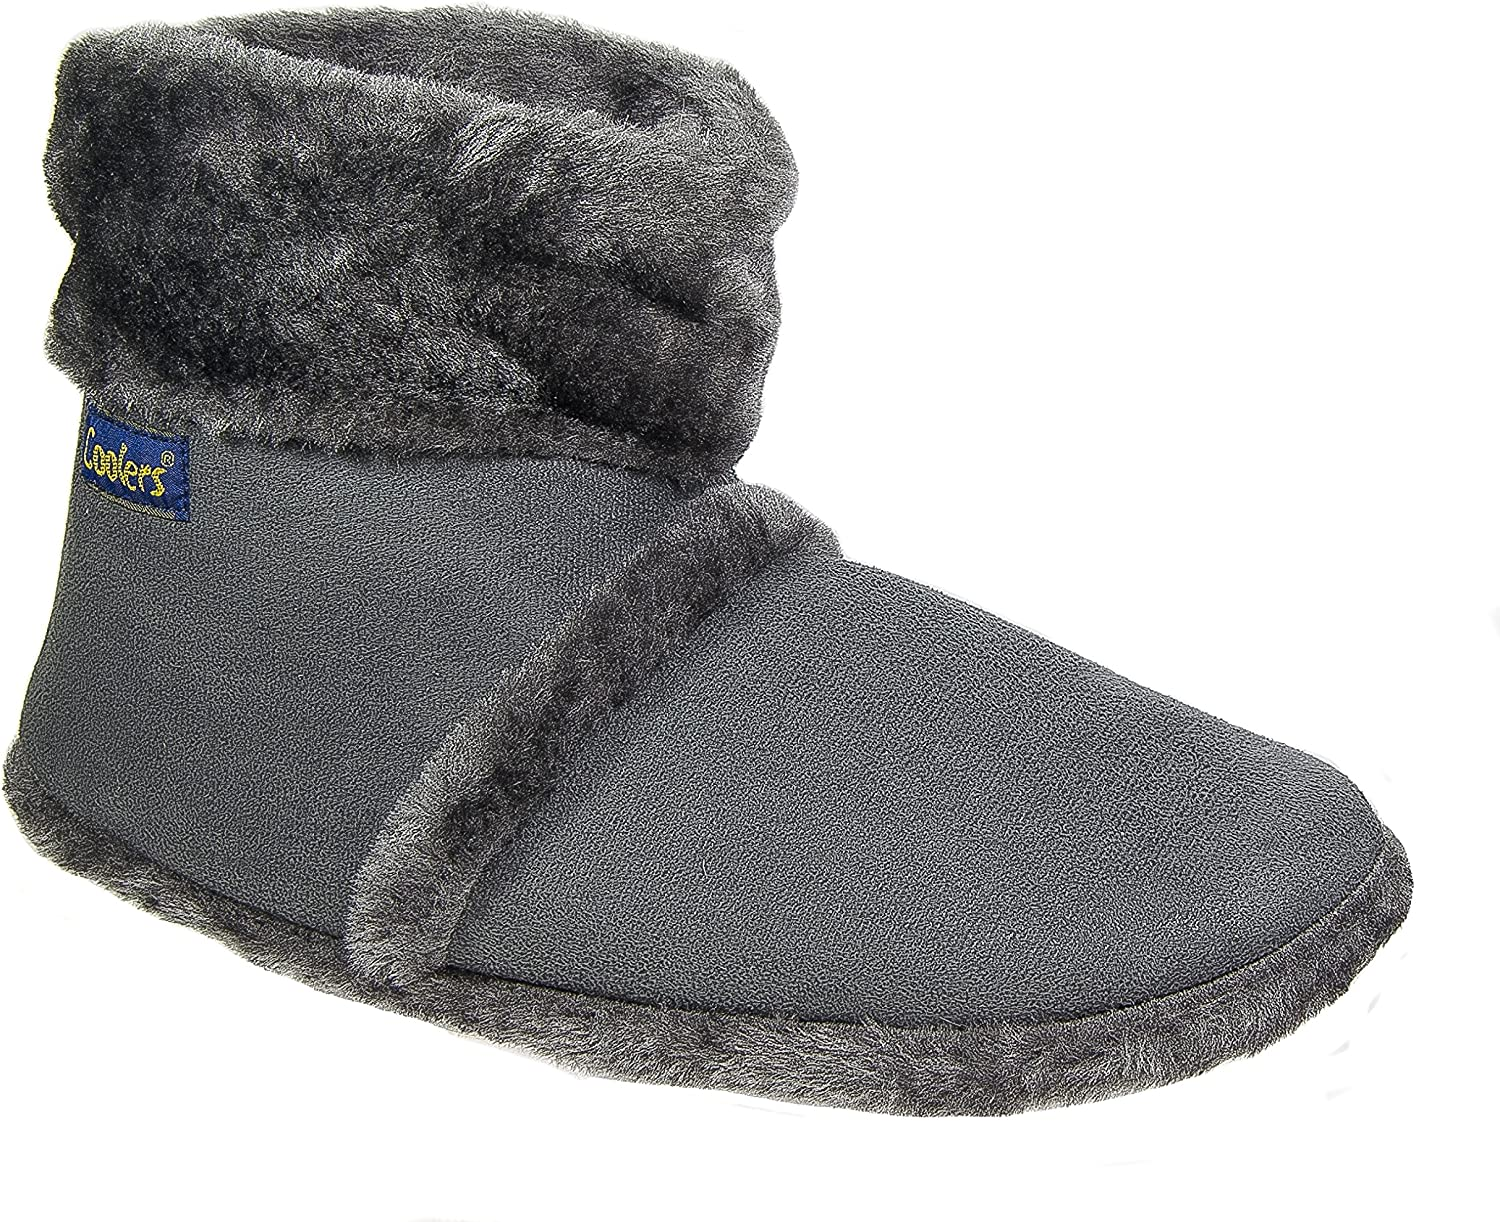 Coolers Ladies Slippers Boots Microsuede Deep Plush Collar